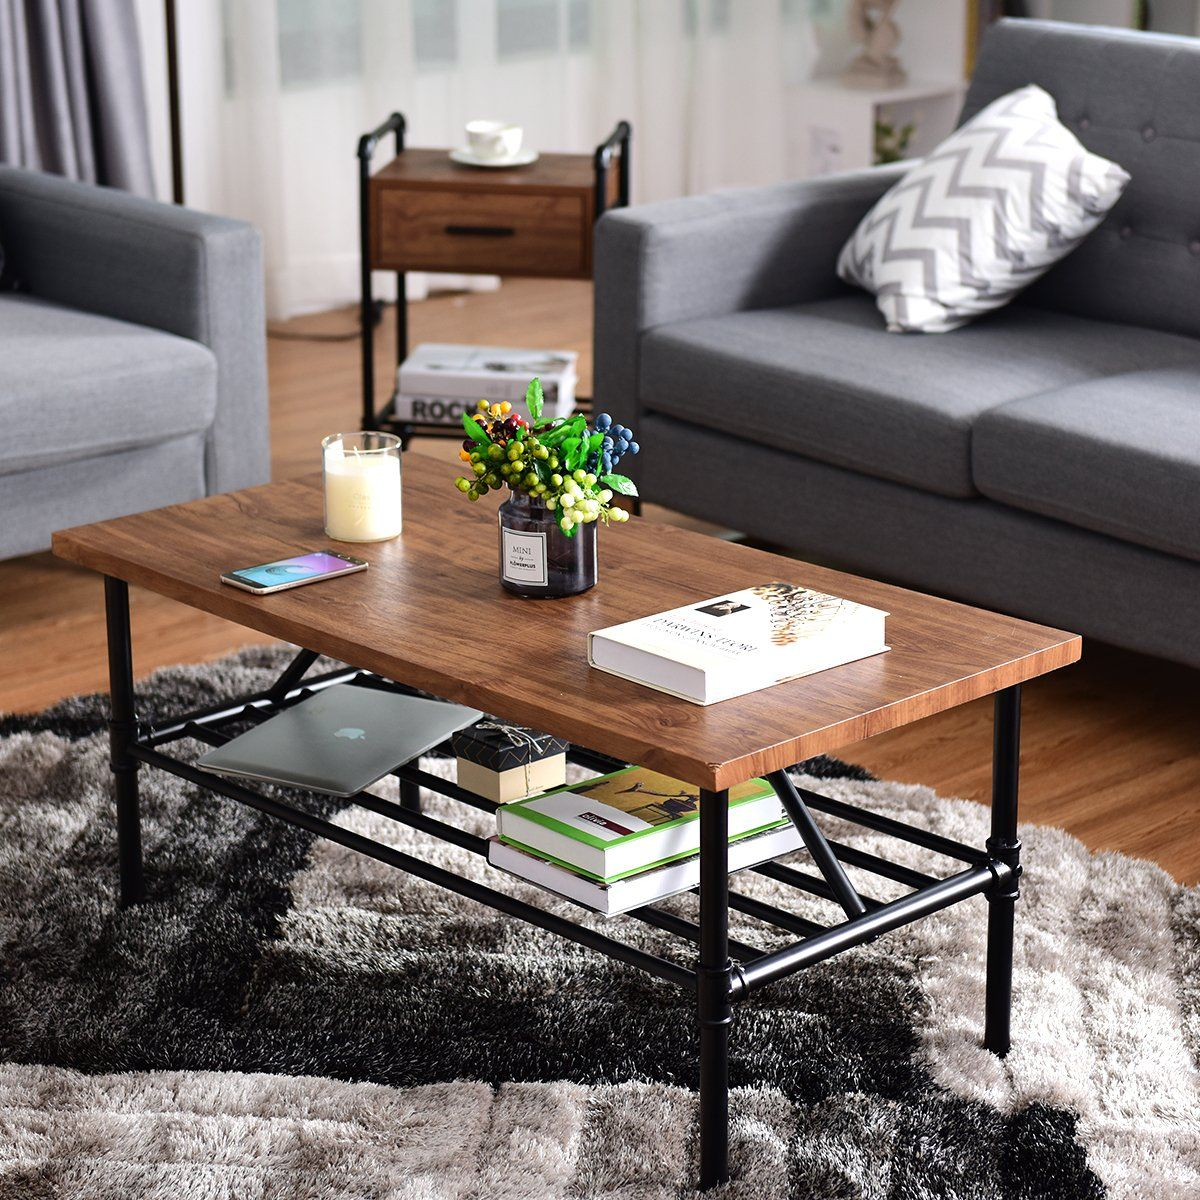 Giantex 2tier rustic coffee table metal frame modern living room furniture vintage wood look industrial style tv sofa side table accent cocktail table